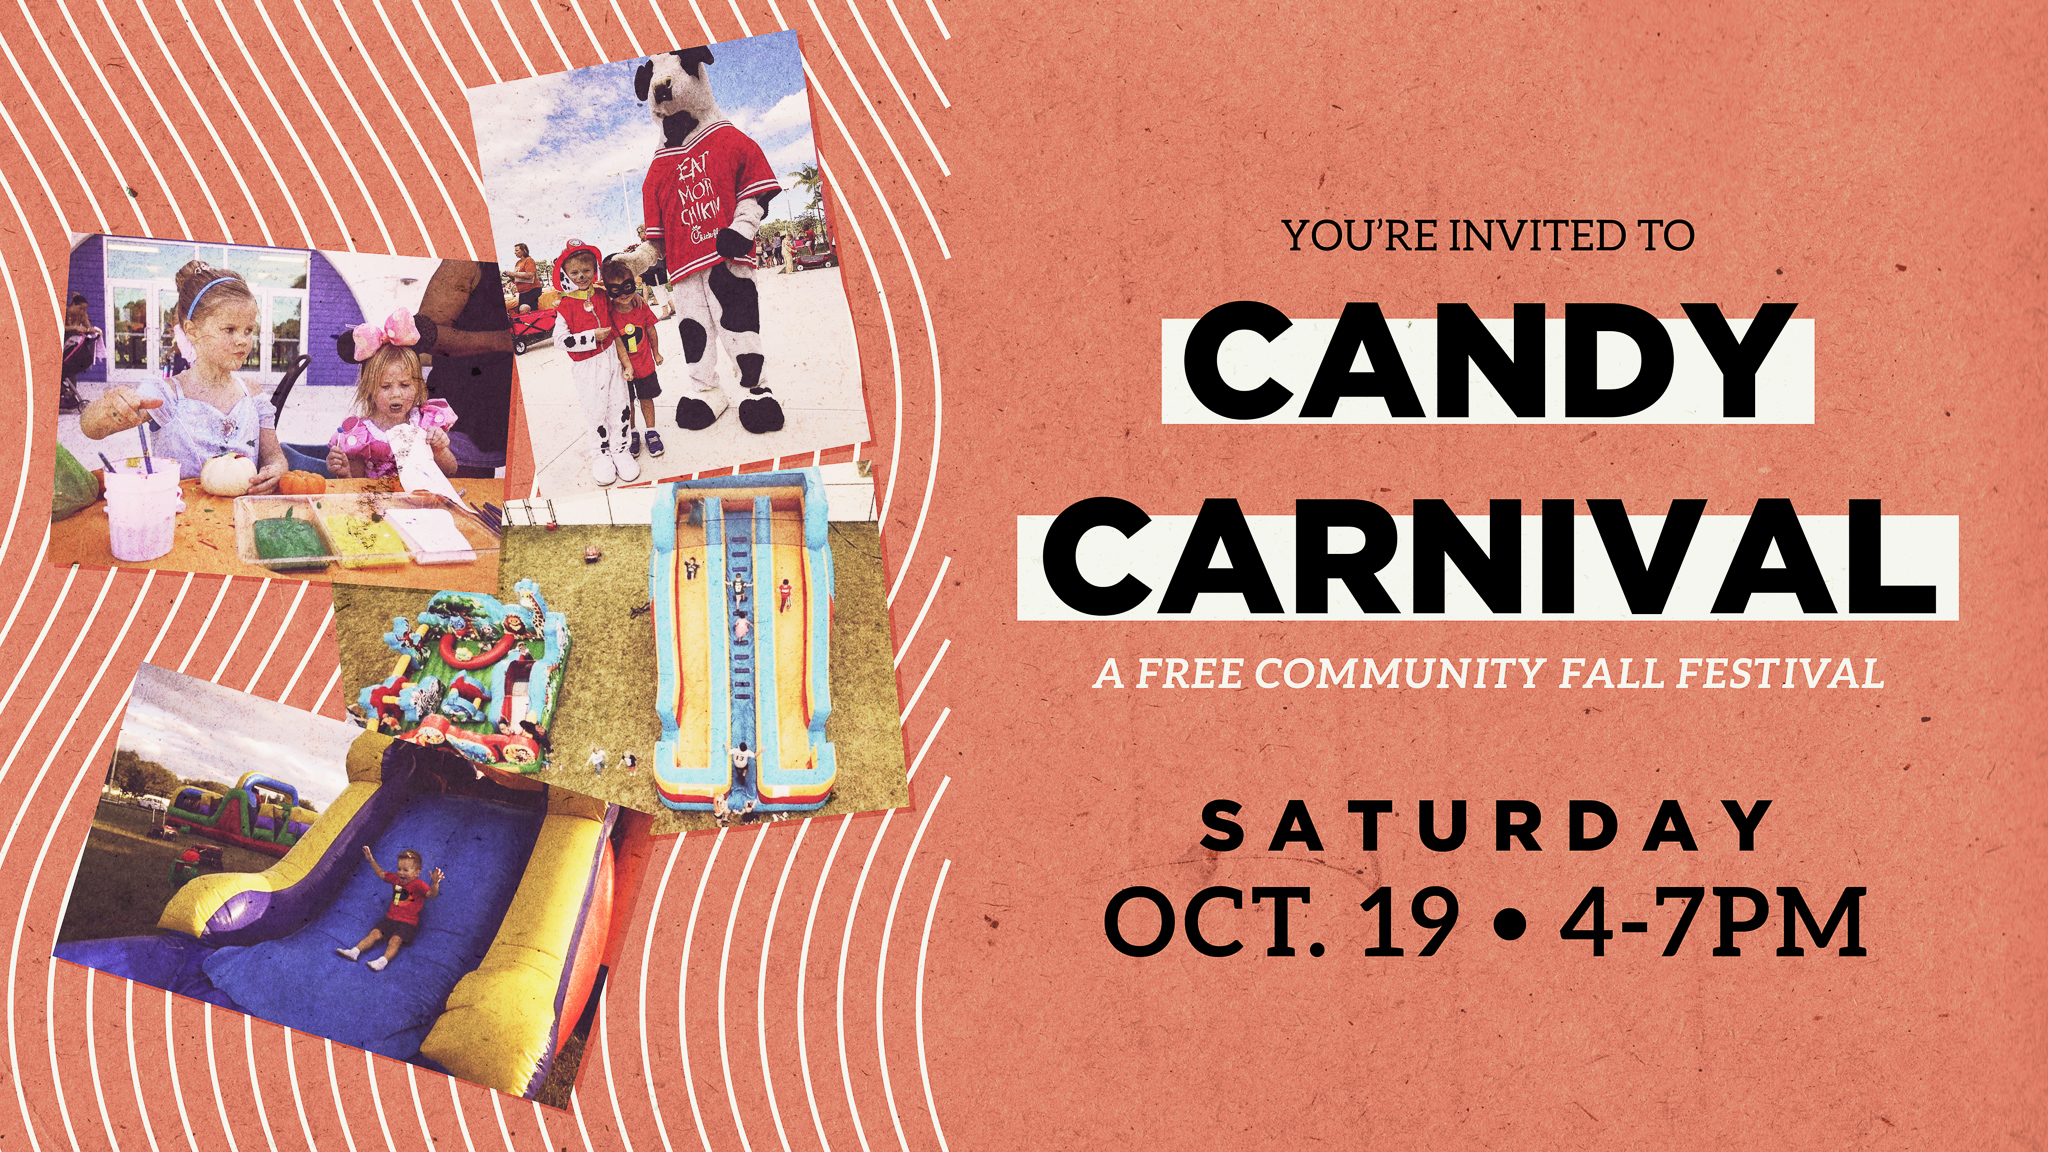 Candy Carnival FACEBOOK-EMAIL-2.jpg